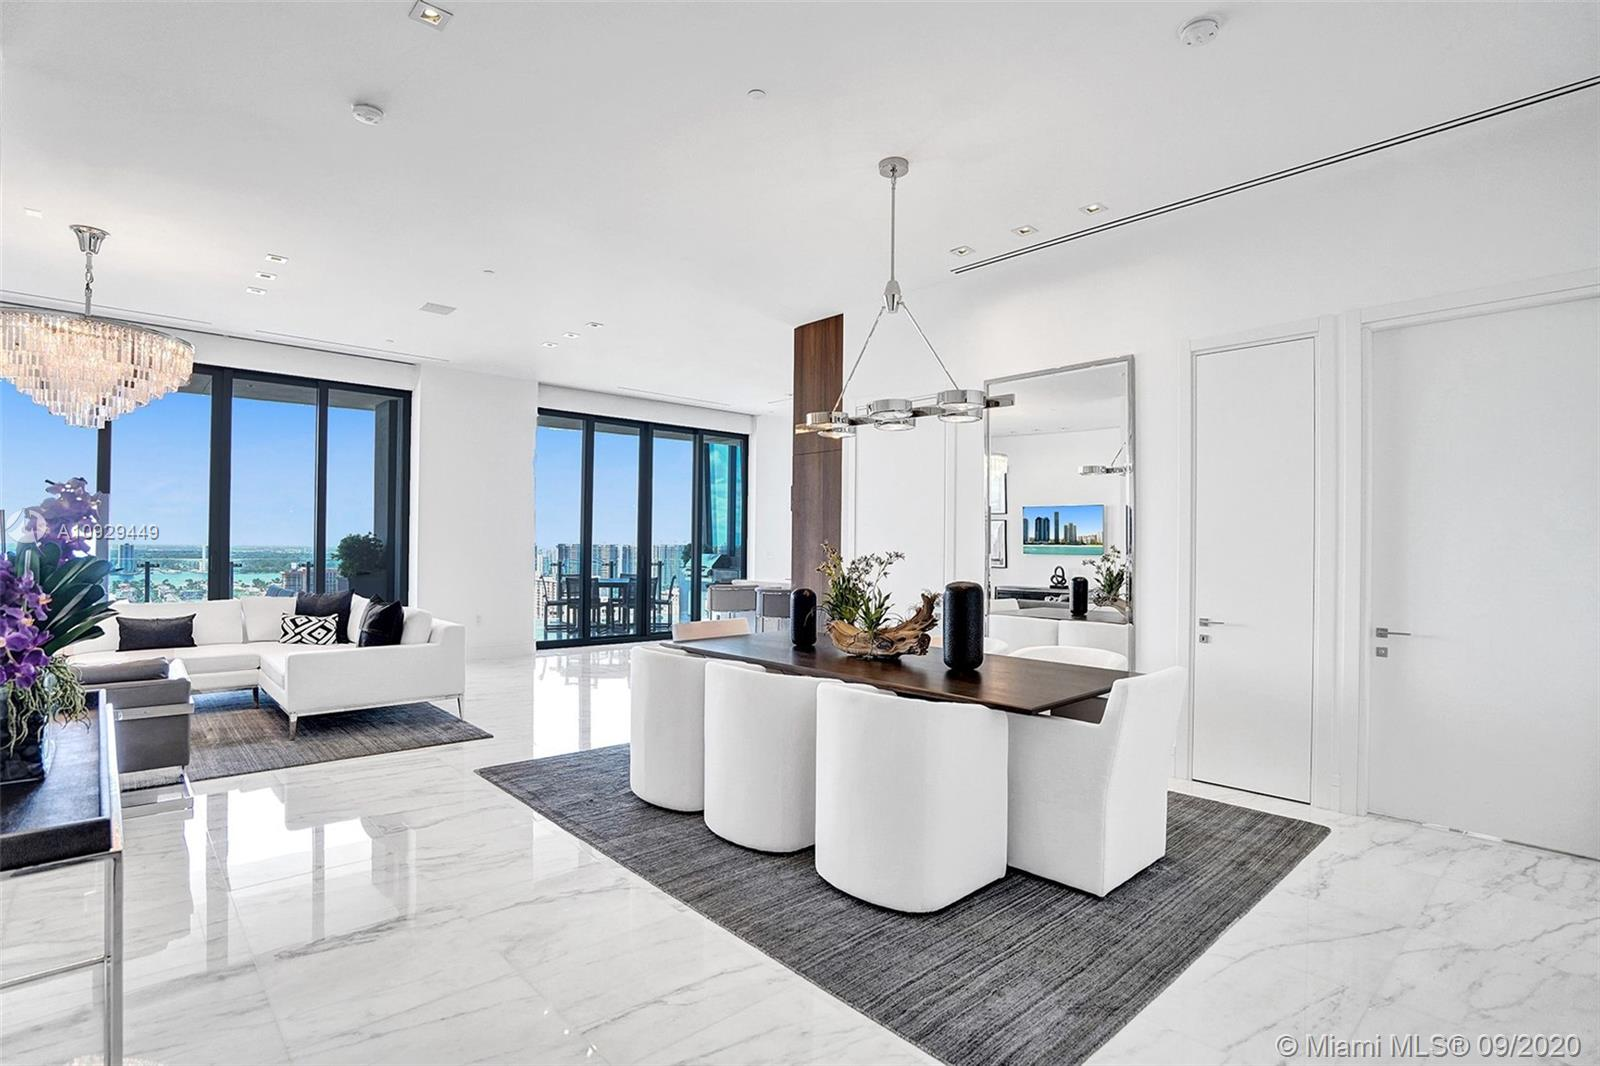 Absolutely Stunning, designer finished 2/2.5 in the Ultra-Exclusive and Luxurious Muse in Sunny Isles. The Massive terrace with Sweeping intracoastal & city views becomes a second living & dining space with an outdoor grill, dining area & a lounging/entertaining space. This smart home is full of exceptional features: lighting, shades, audio & video integration, Calacutta marble flooring throughout and 11+ ft ceilings.Designer Italian kitchen w/dual temp wine cooler, Wolf & Subzero appliances.The Master suite is complete with a midnight bar, beautiful walk-in in closet, soaking tub, rain shower, disappearing TV behind mirror. Muse's personalized service available at the restaurant, the pool, spa & the beach.Enjoy the best of luxury resort style living in Sunny Isles' best boutique building.